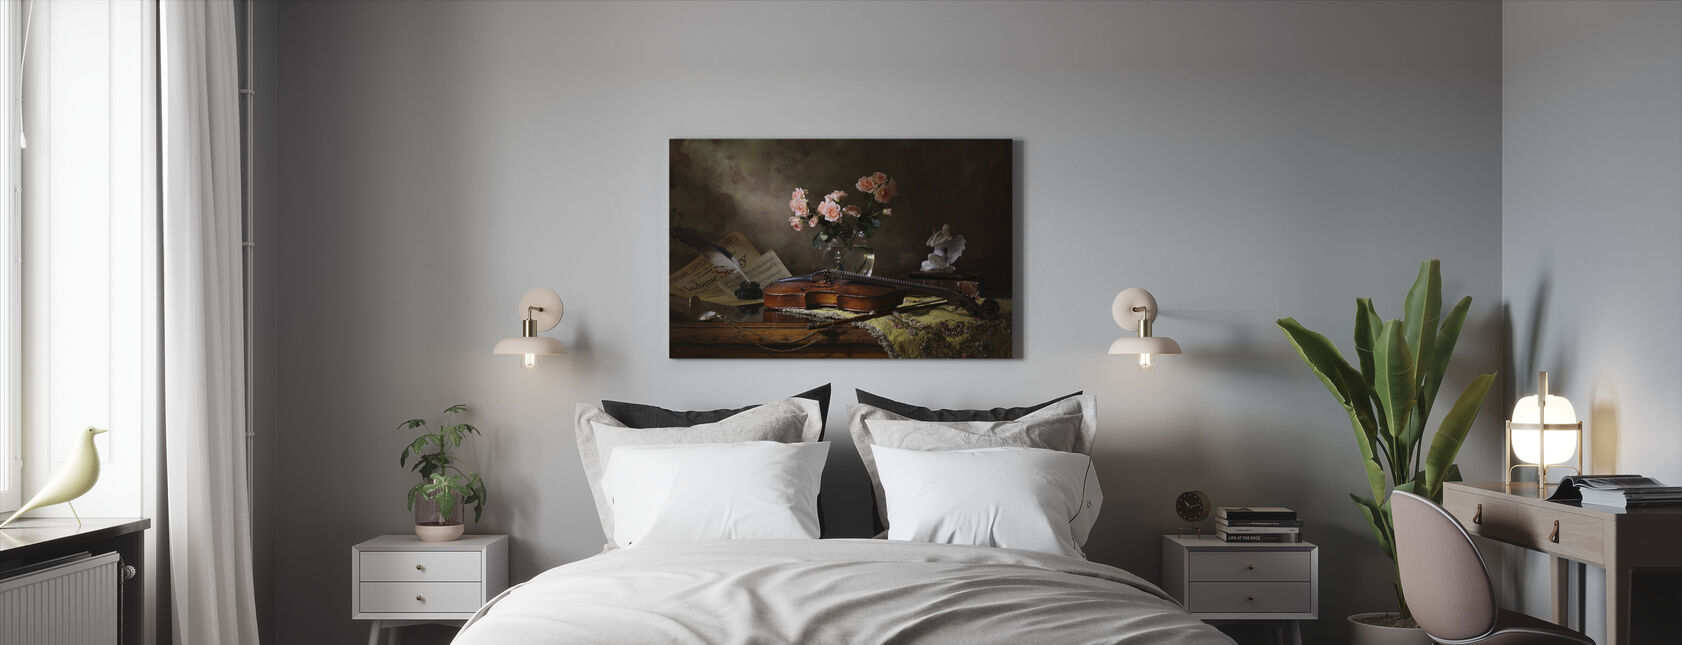 Still Life with Violin and Roses - Canvas print - Bedroom